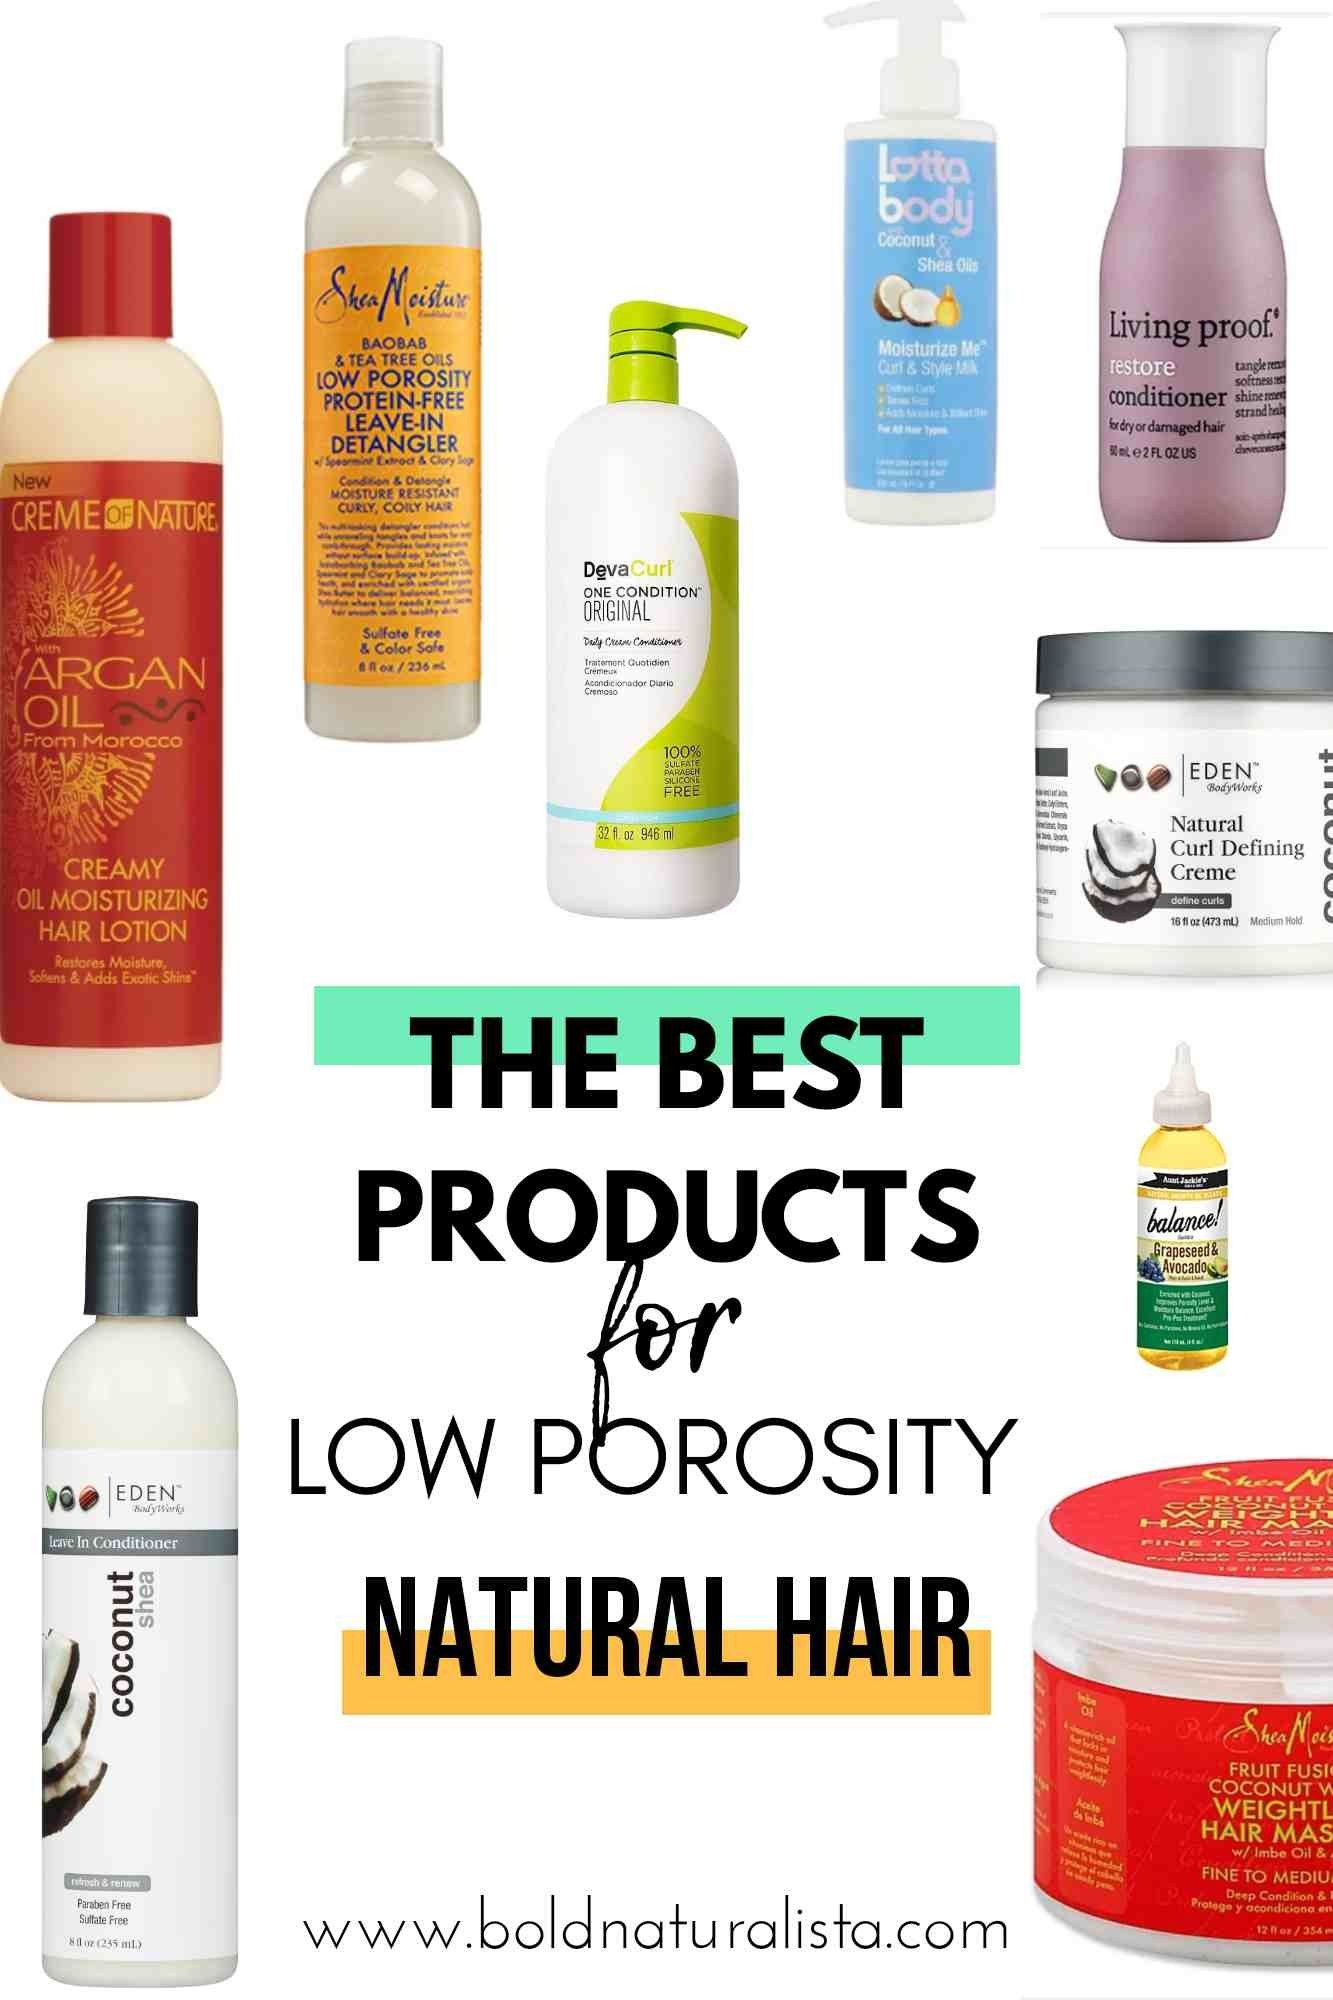 Best Products For Natural Hair In 2020 Low Porosity Hair Products Low Porosity Natural Hair Hair Porosity